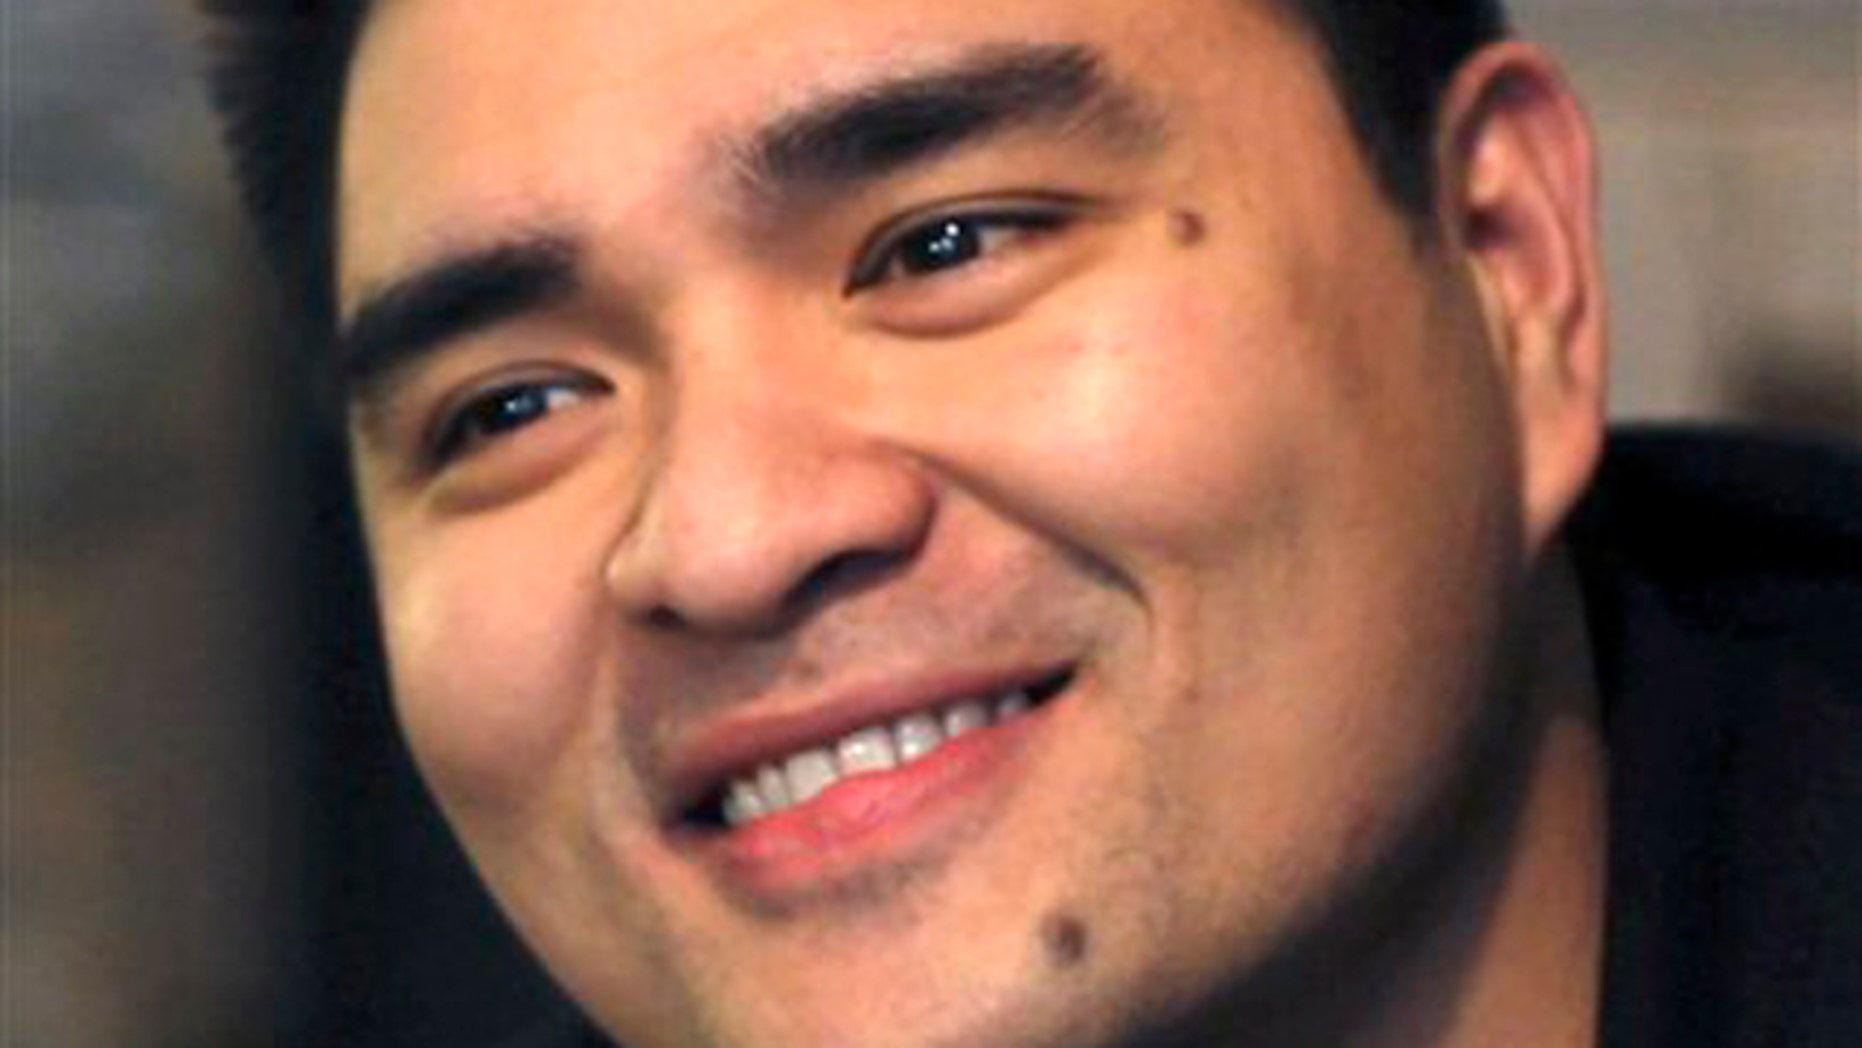 This undated handout photo provided by Define American shows Jose Antonio Vargas, a Pulitzer Prize-winning journalist.